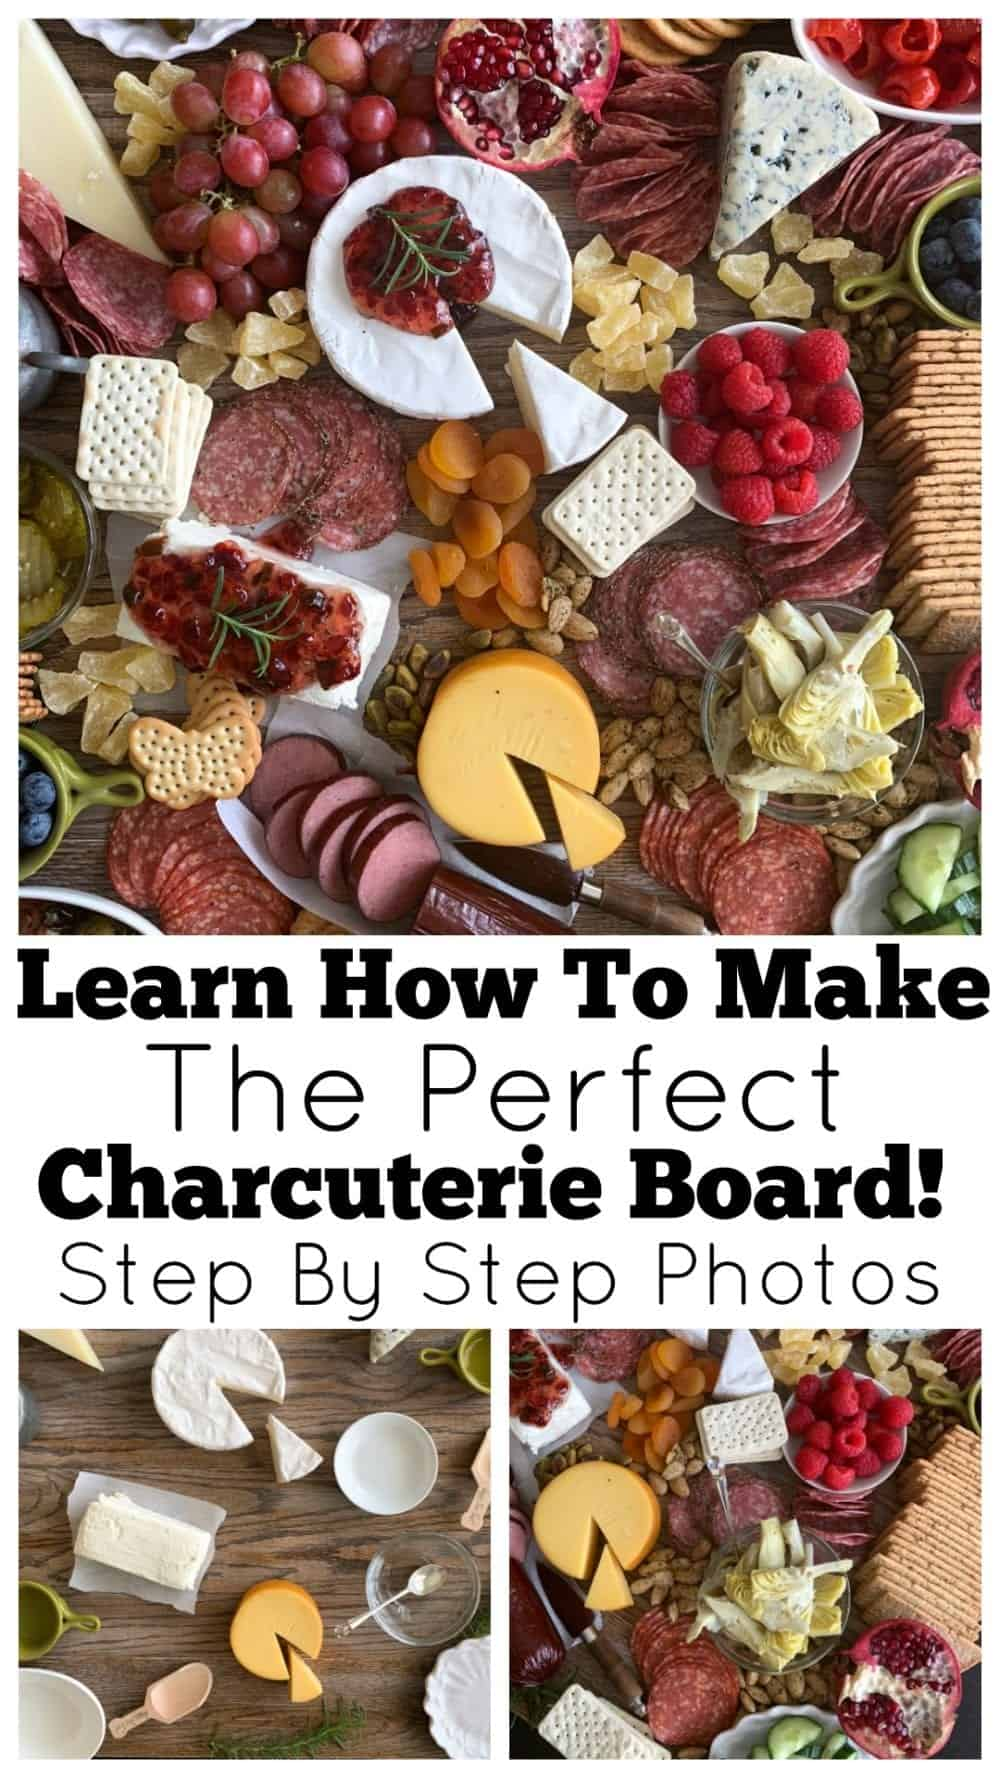 photo collage of charcuterie board